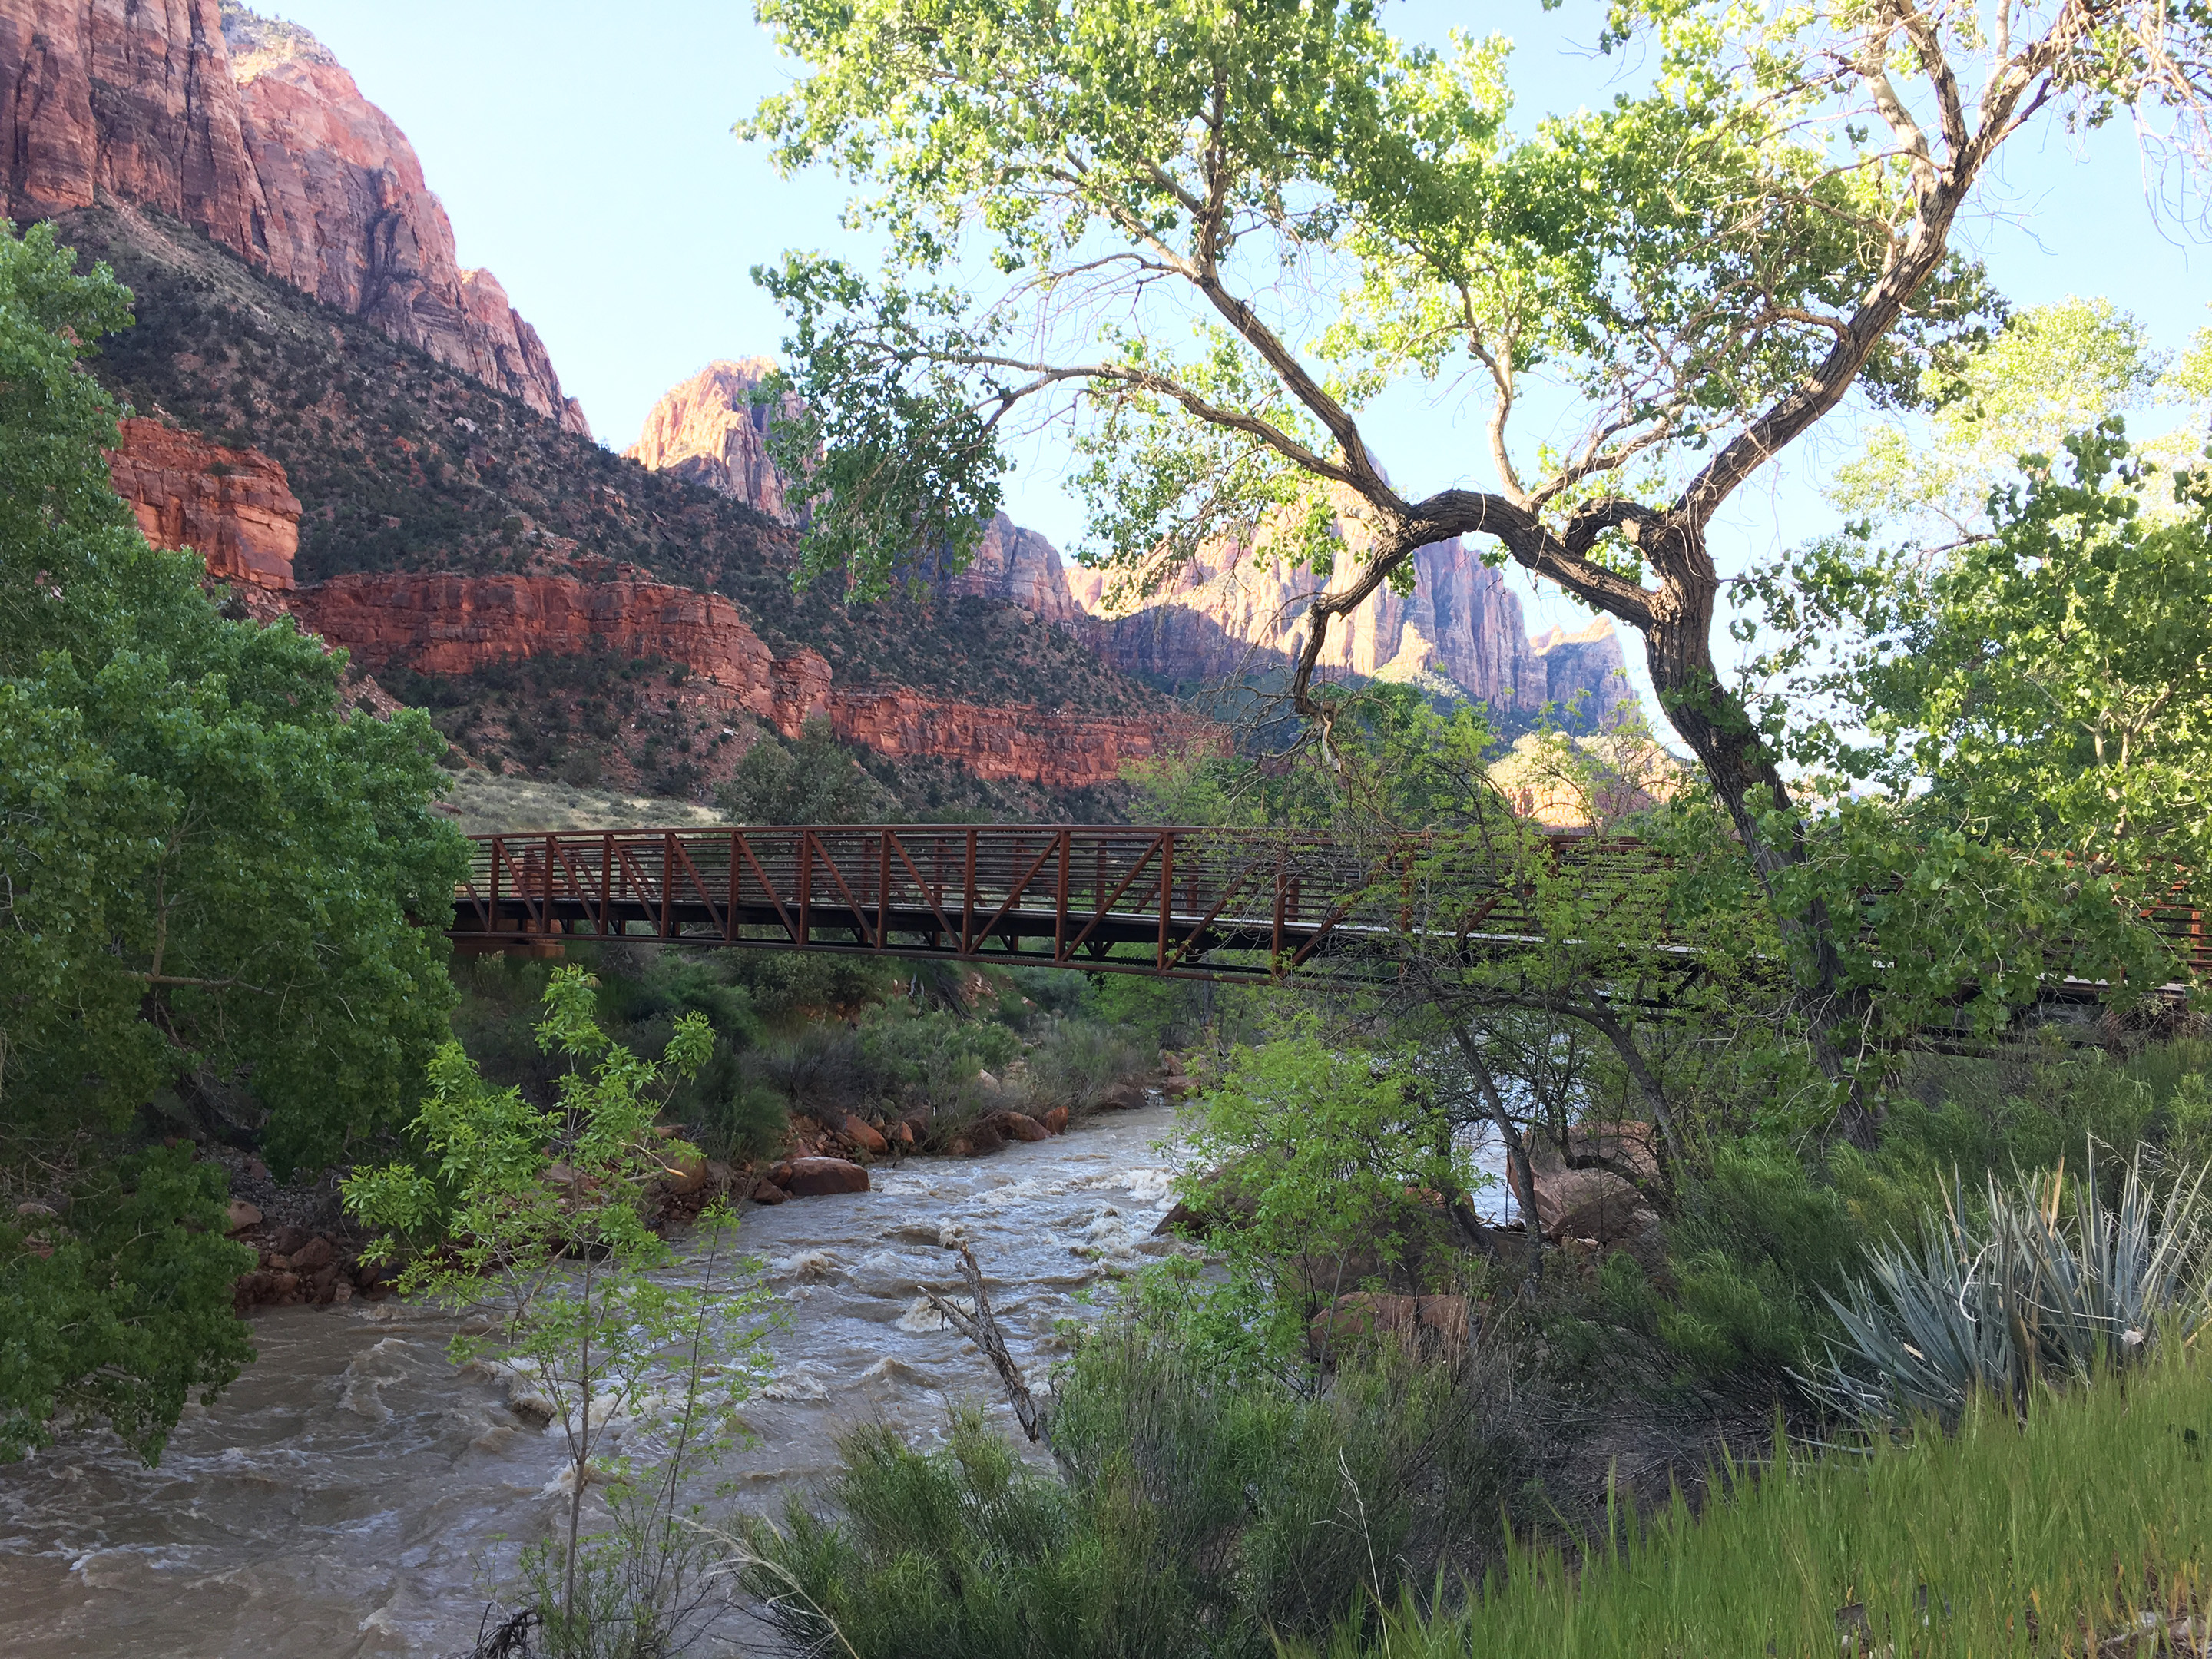 Bridge crossing the Virgin river